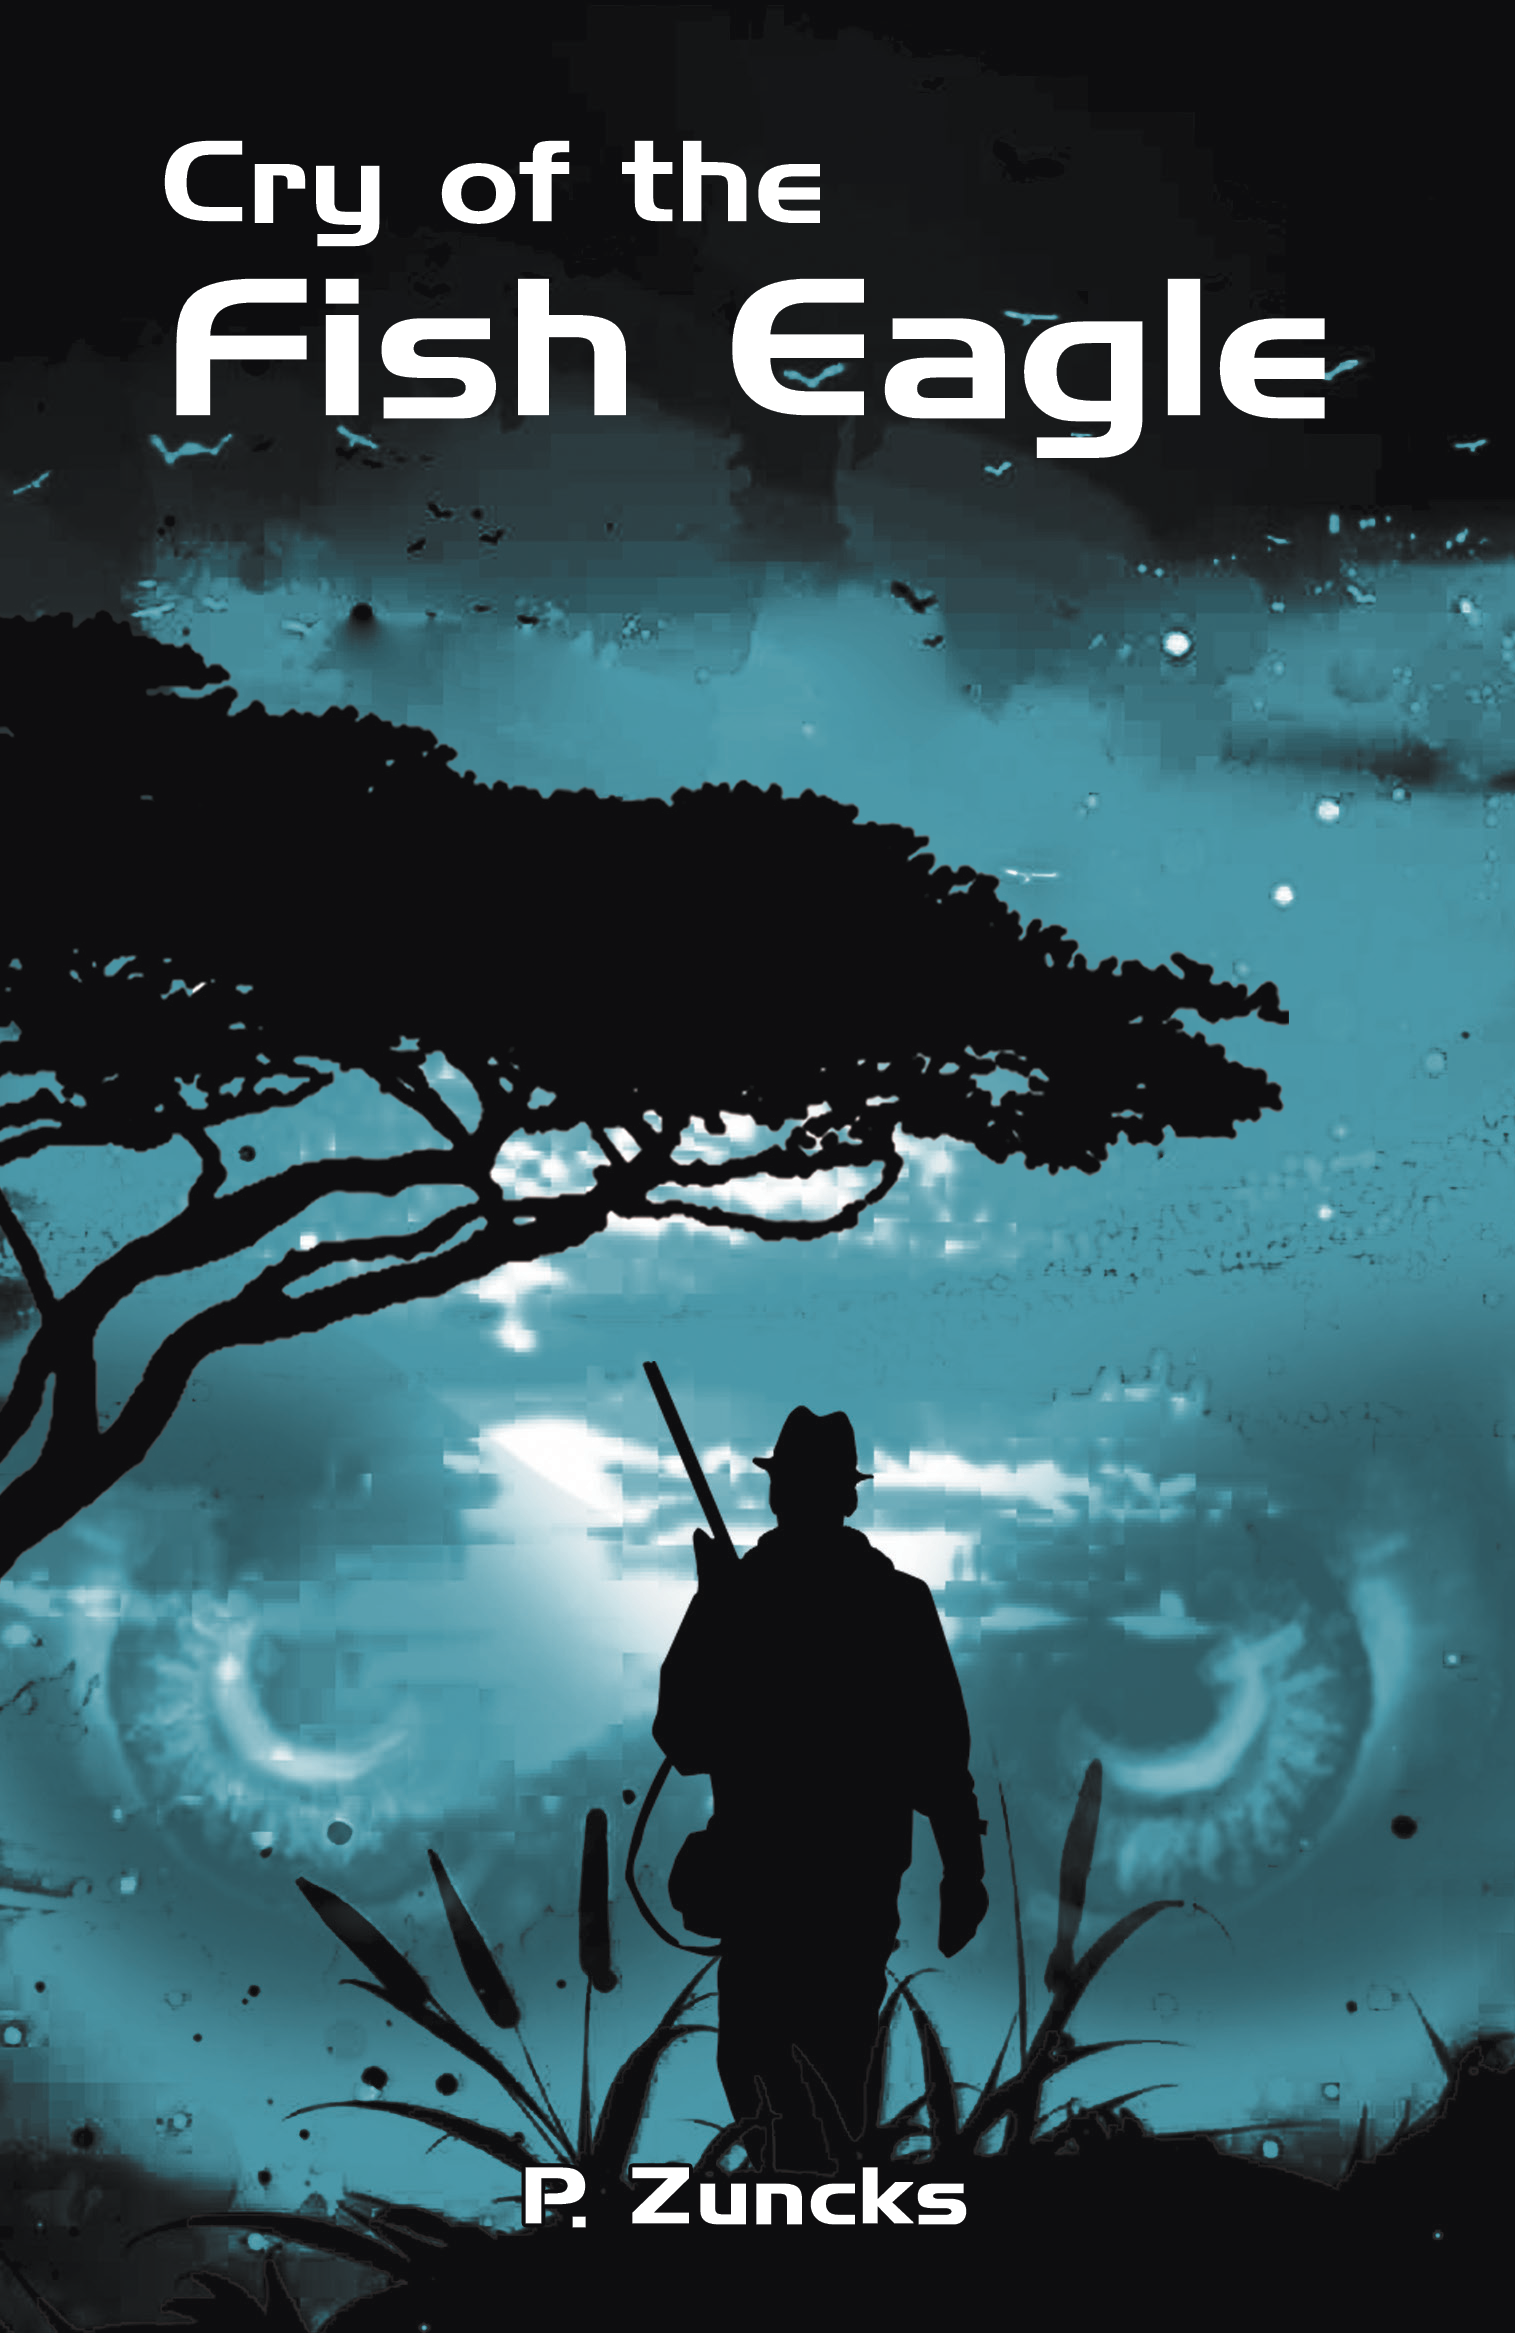 Cry of the Fish Eagle's Ebook Image